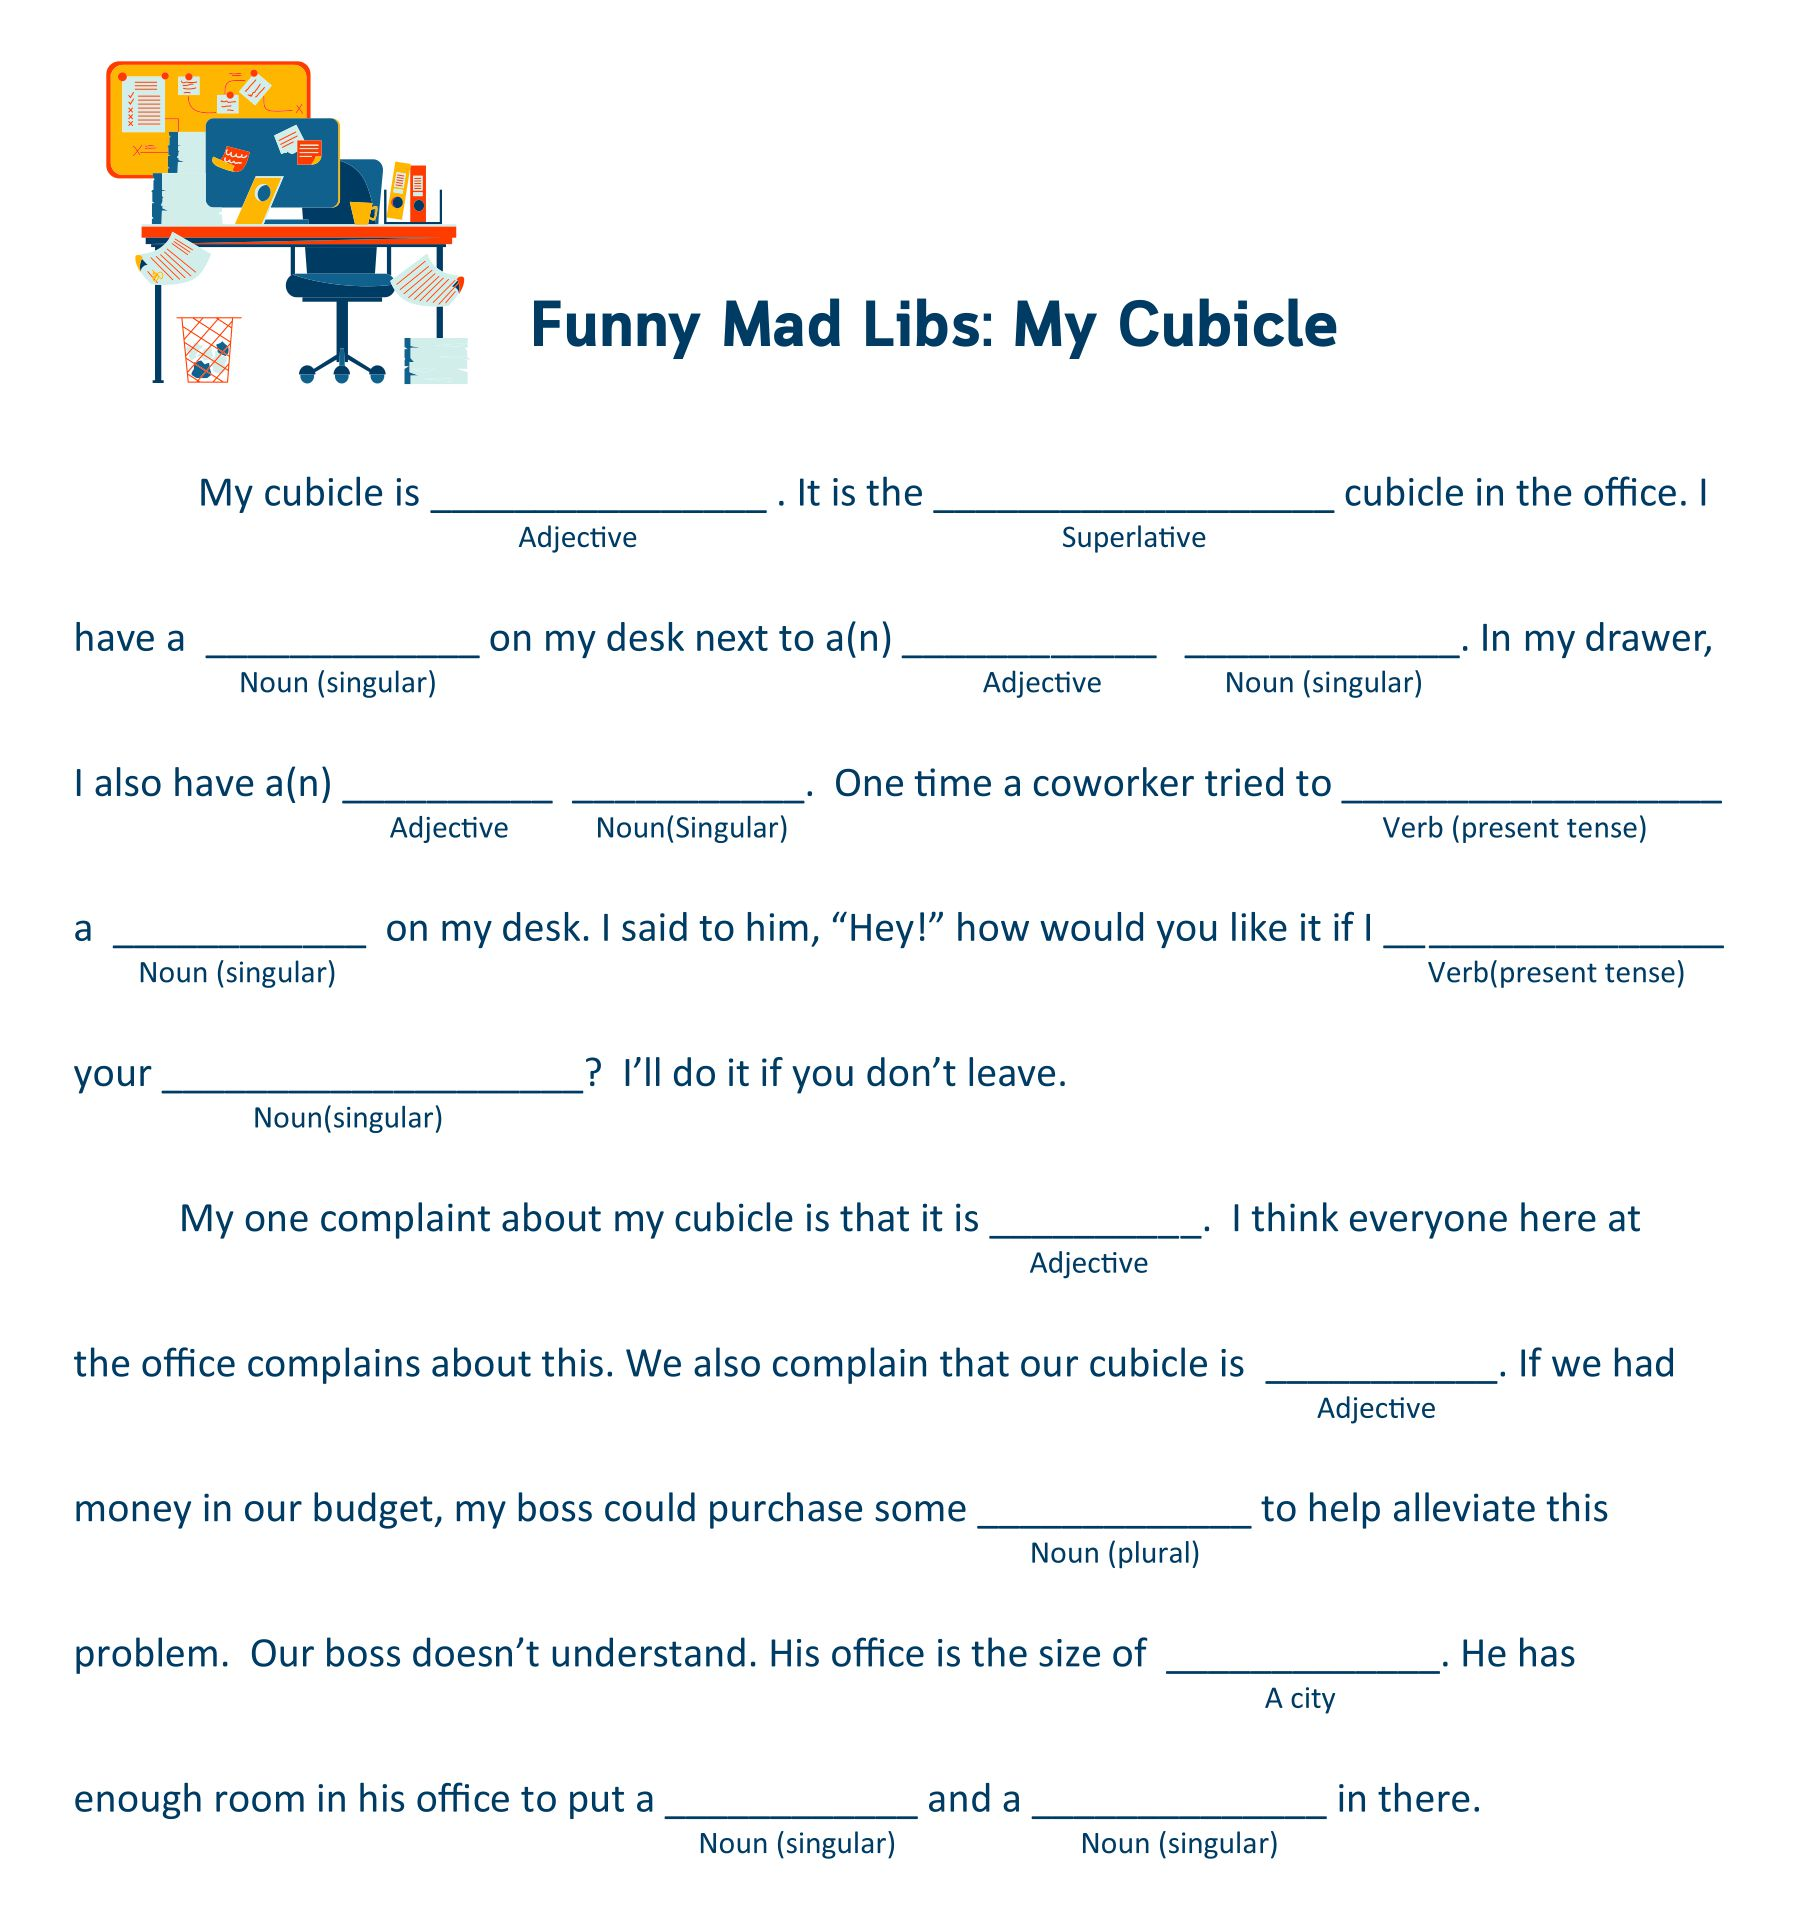 Nifty image with regard to office mad libs printable